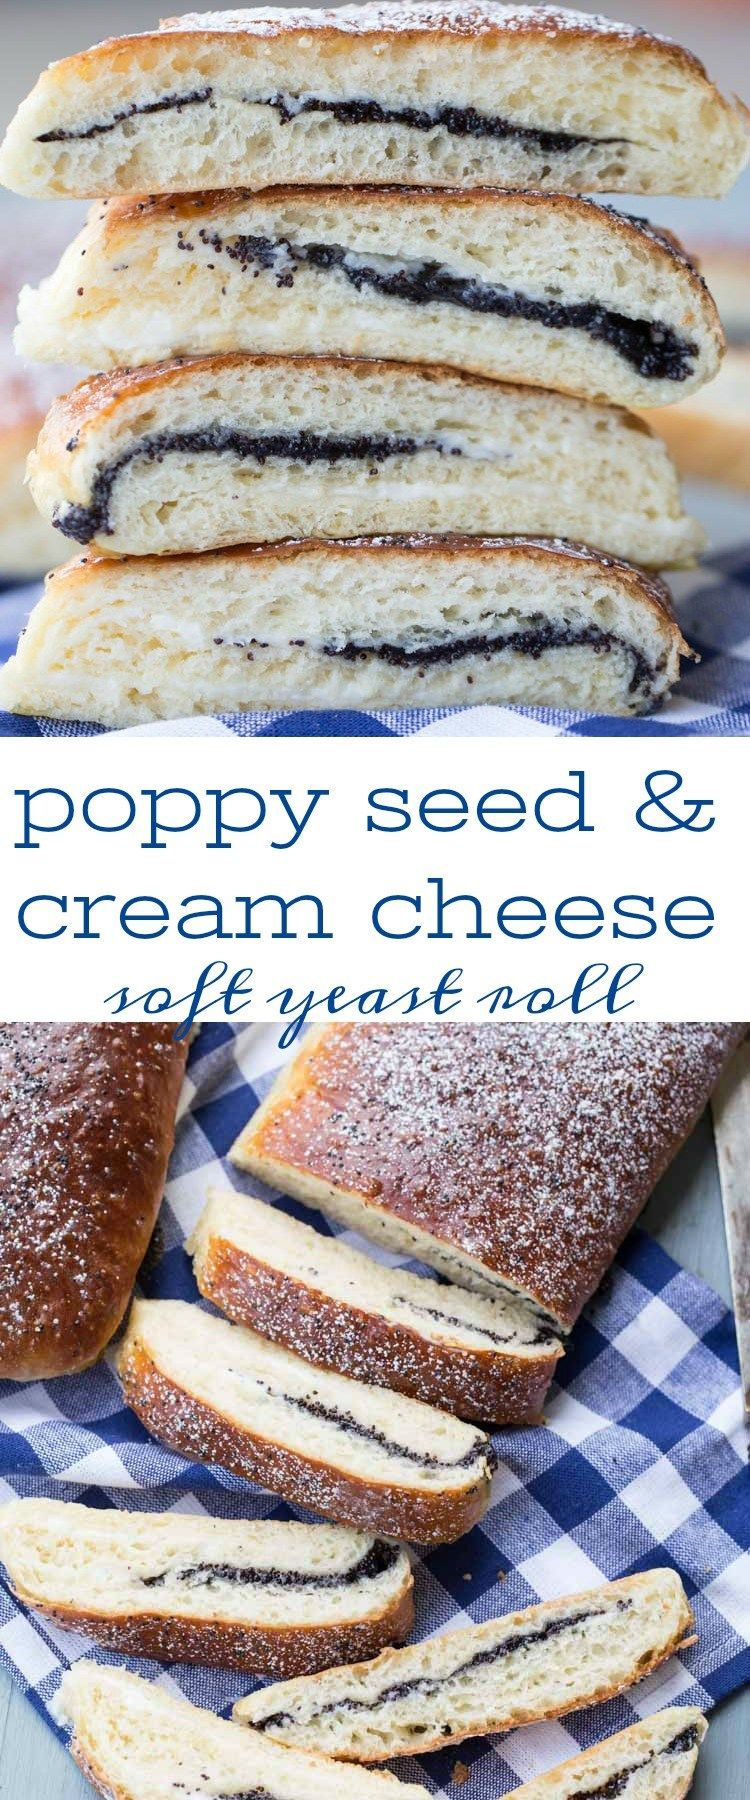 Amazing yeast bread roll recipe with poppy seed and cream ...